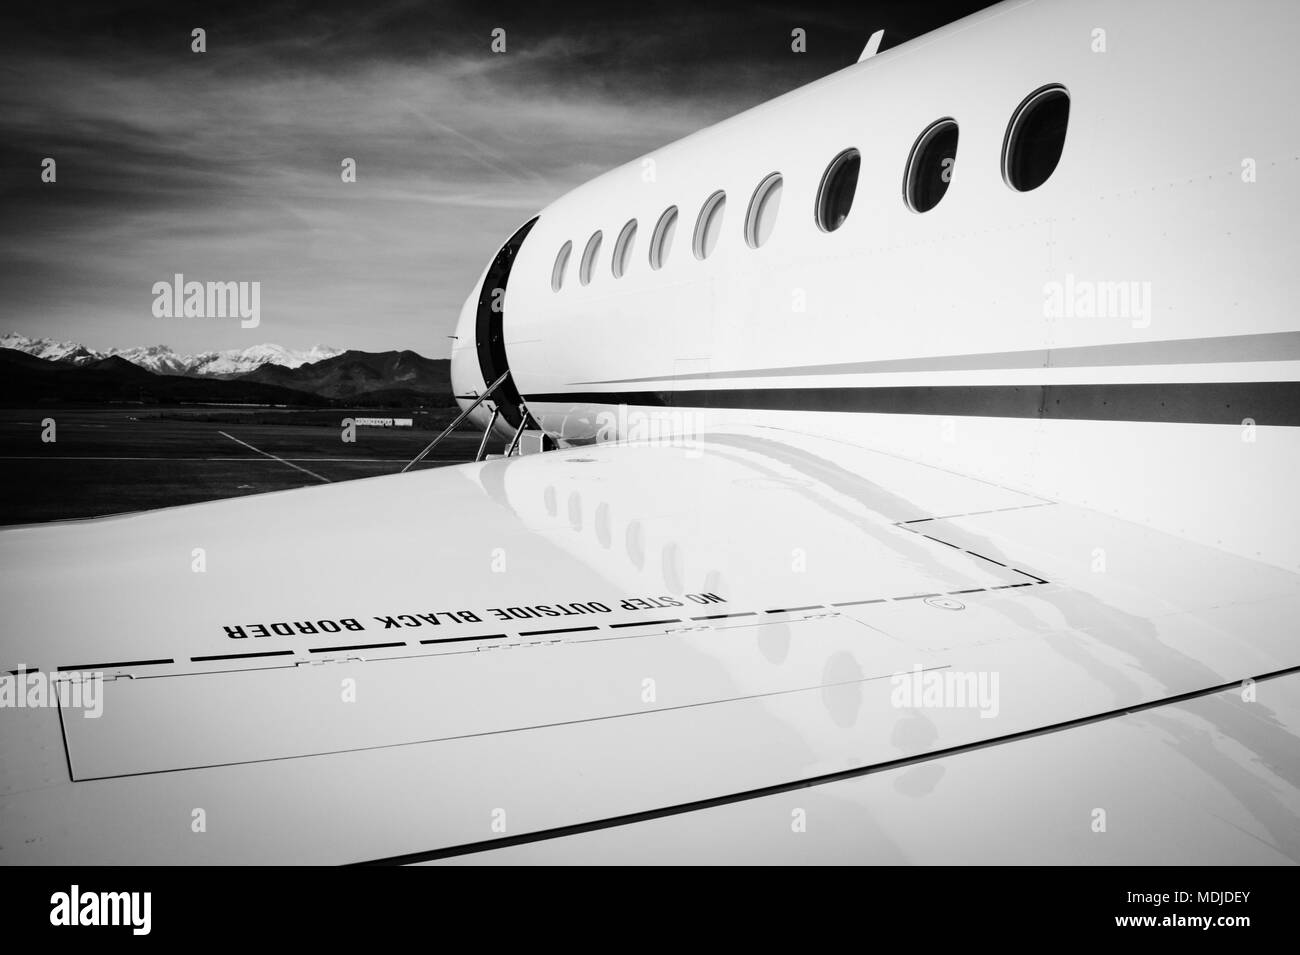 Falcon 2000 Corporate Jet Ready to Go - Stock Image